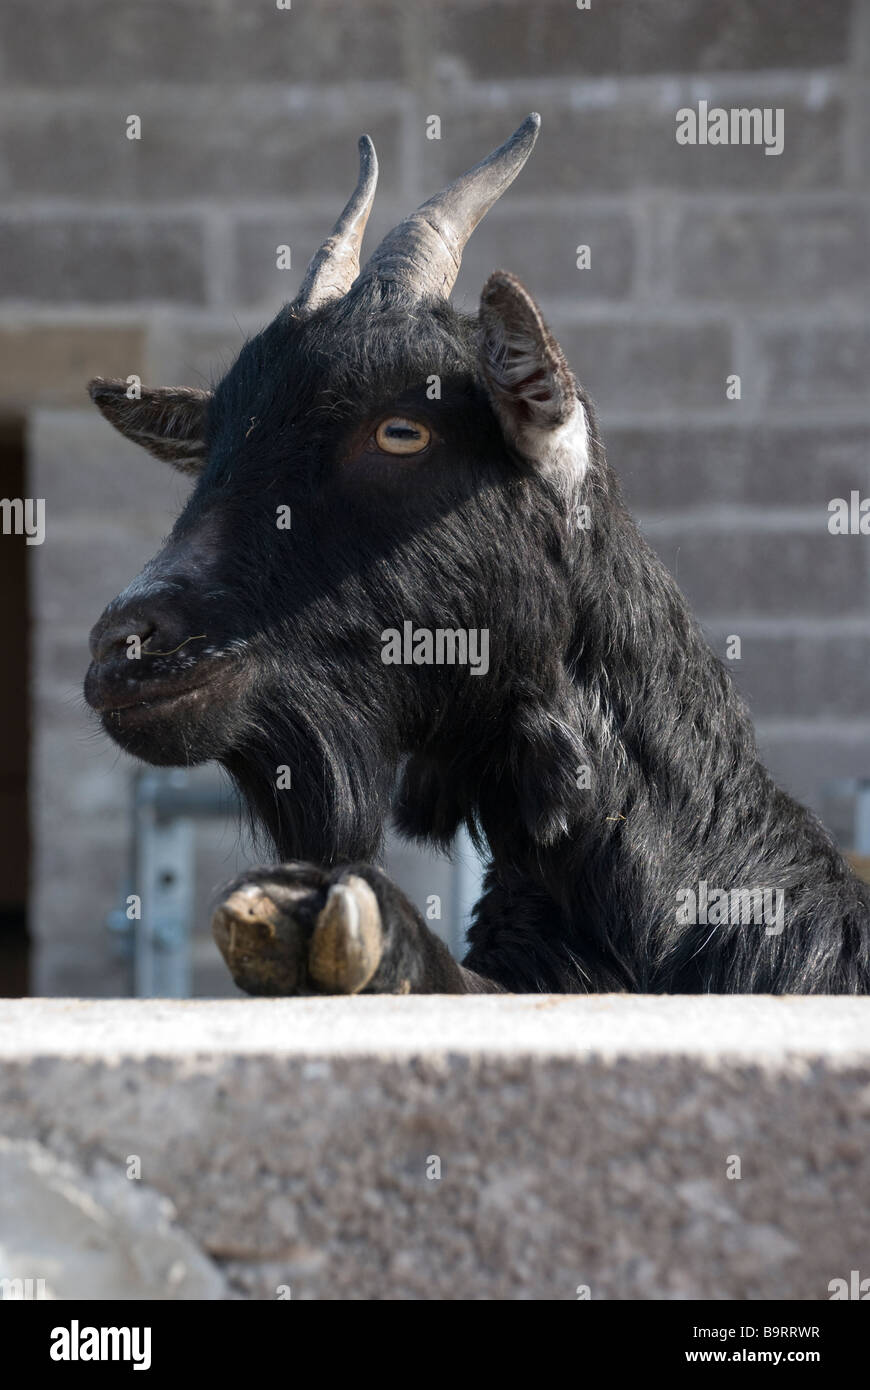 black goat look horns fur hair hoof hooves billy gruff - Stock Image